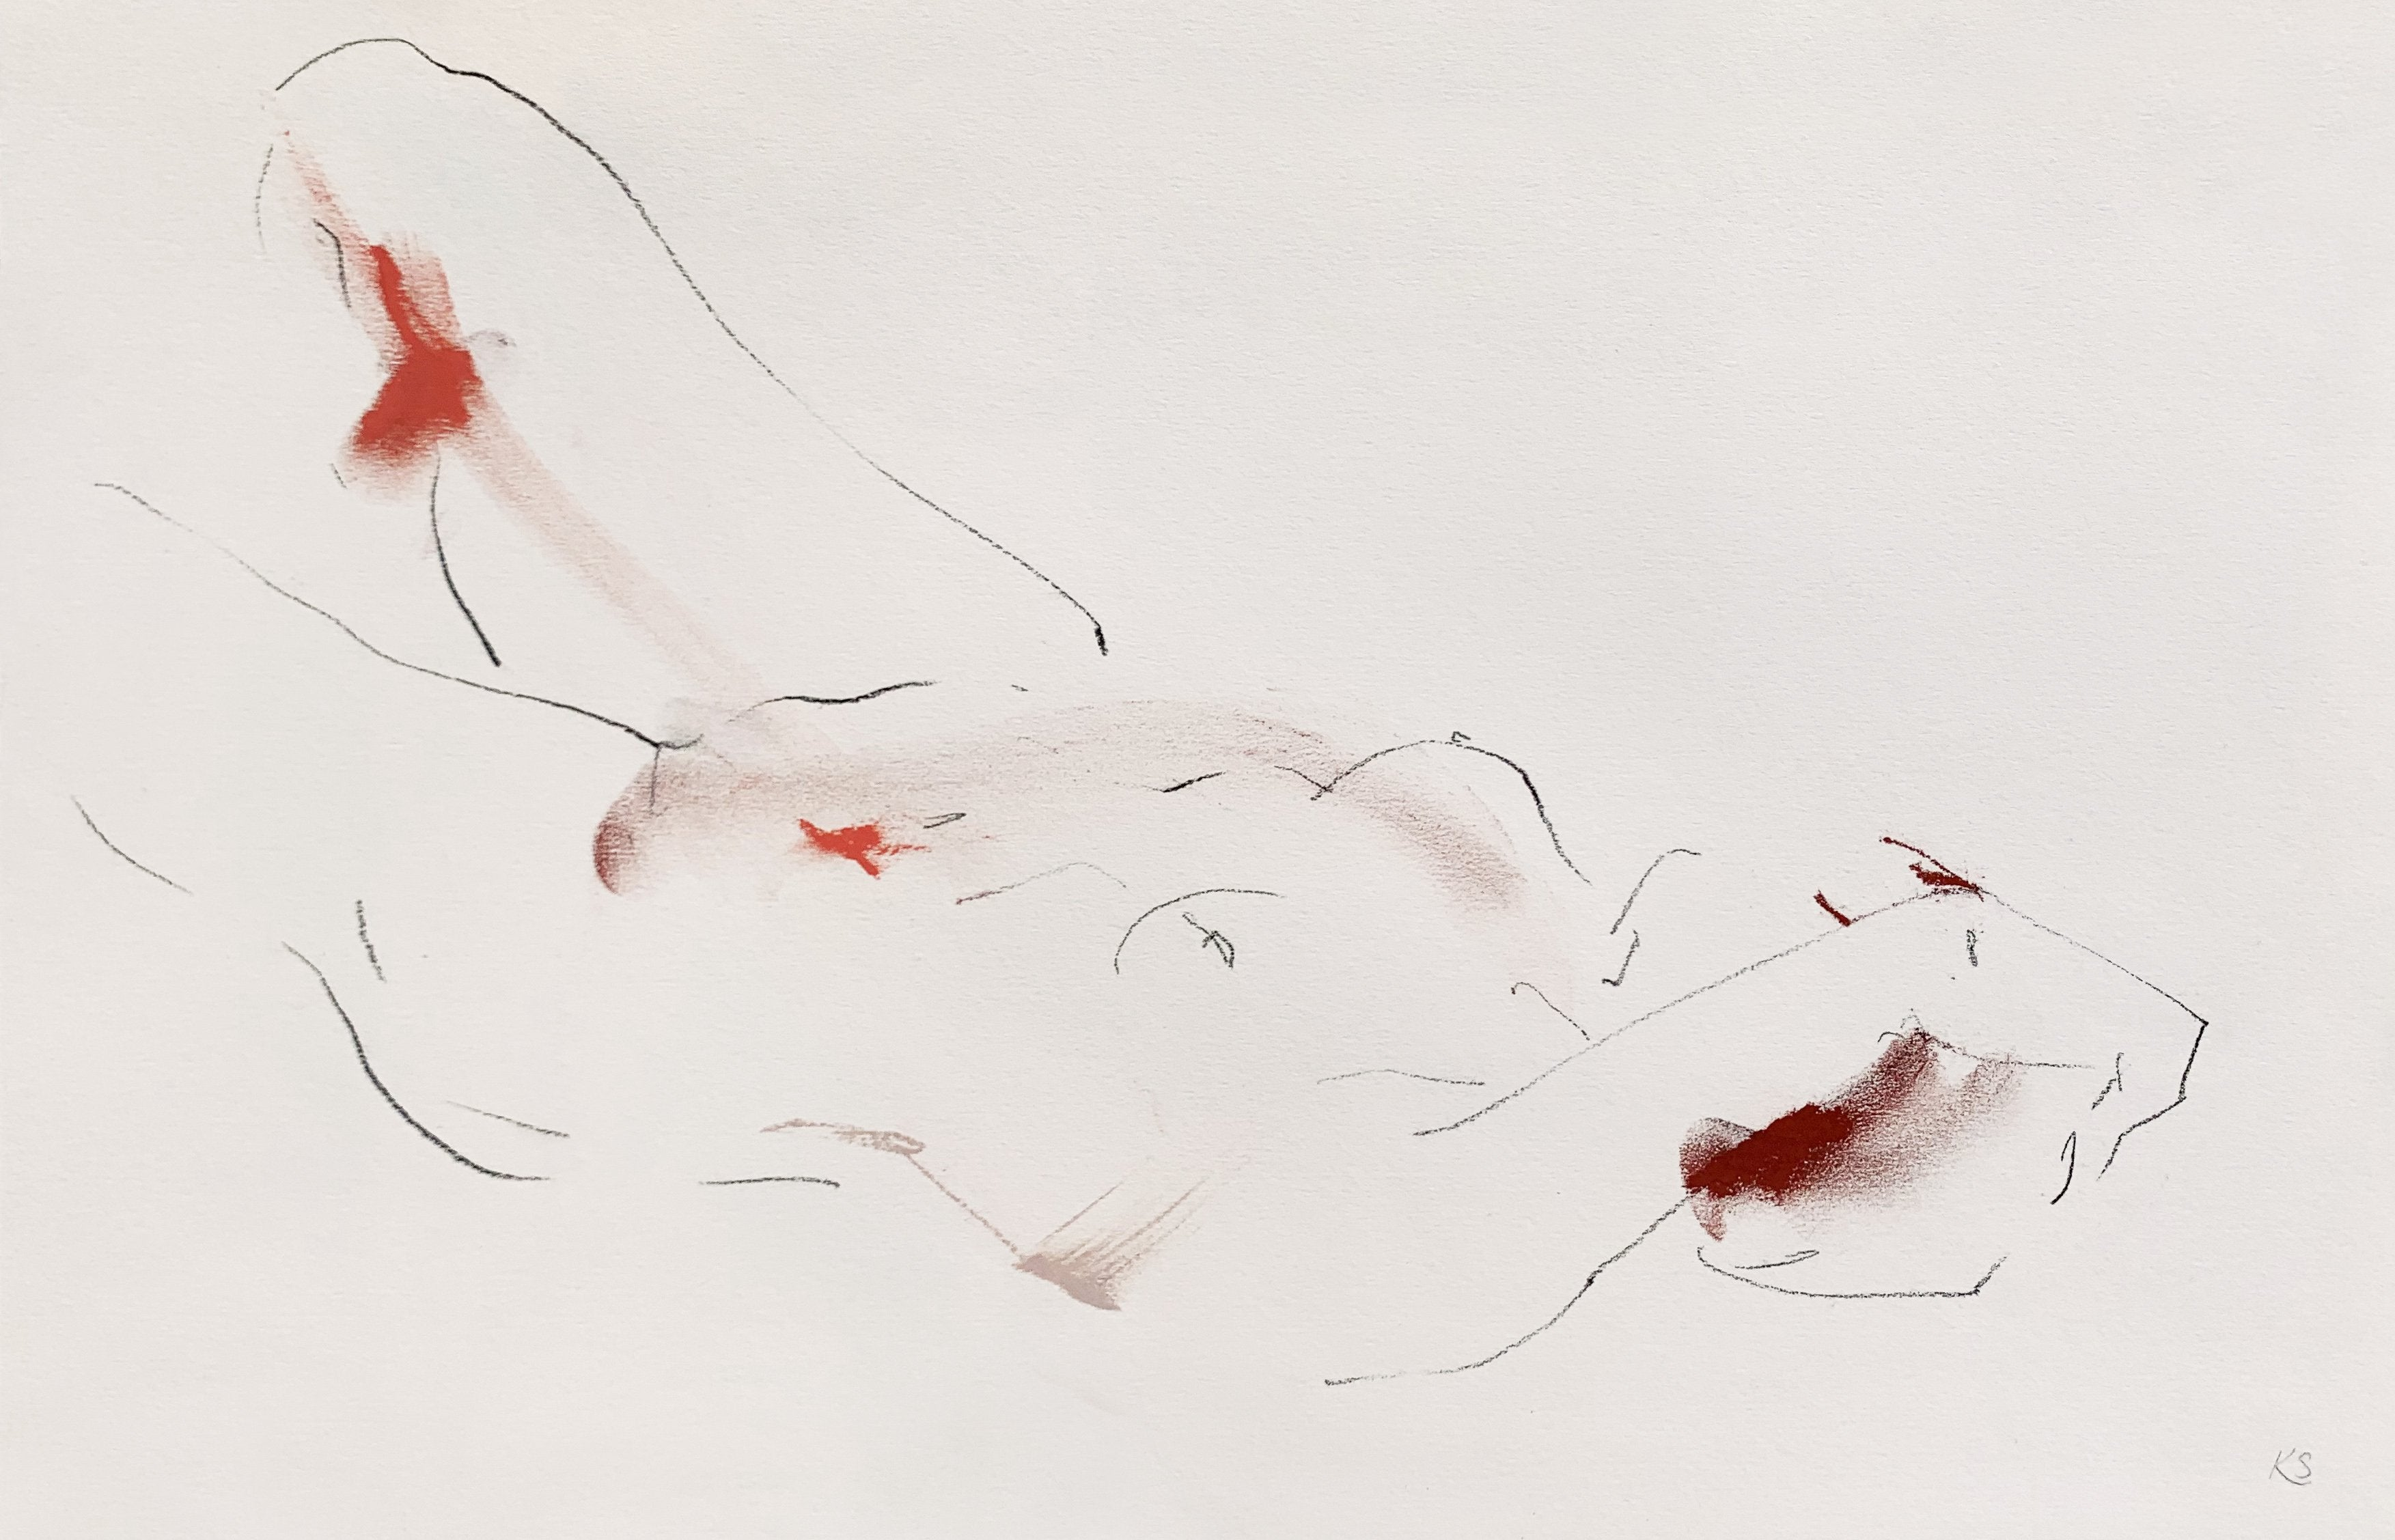 'Your Body Moving Under Pleasure', an expressive life drawing by contemporary, woman artist Katherine Sheers